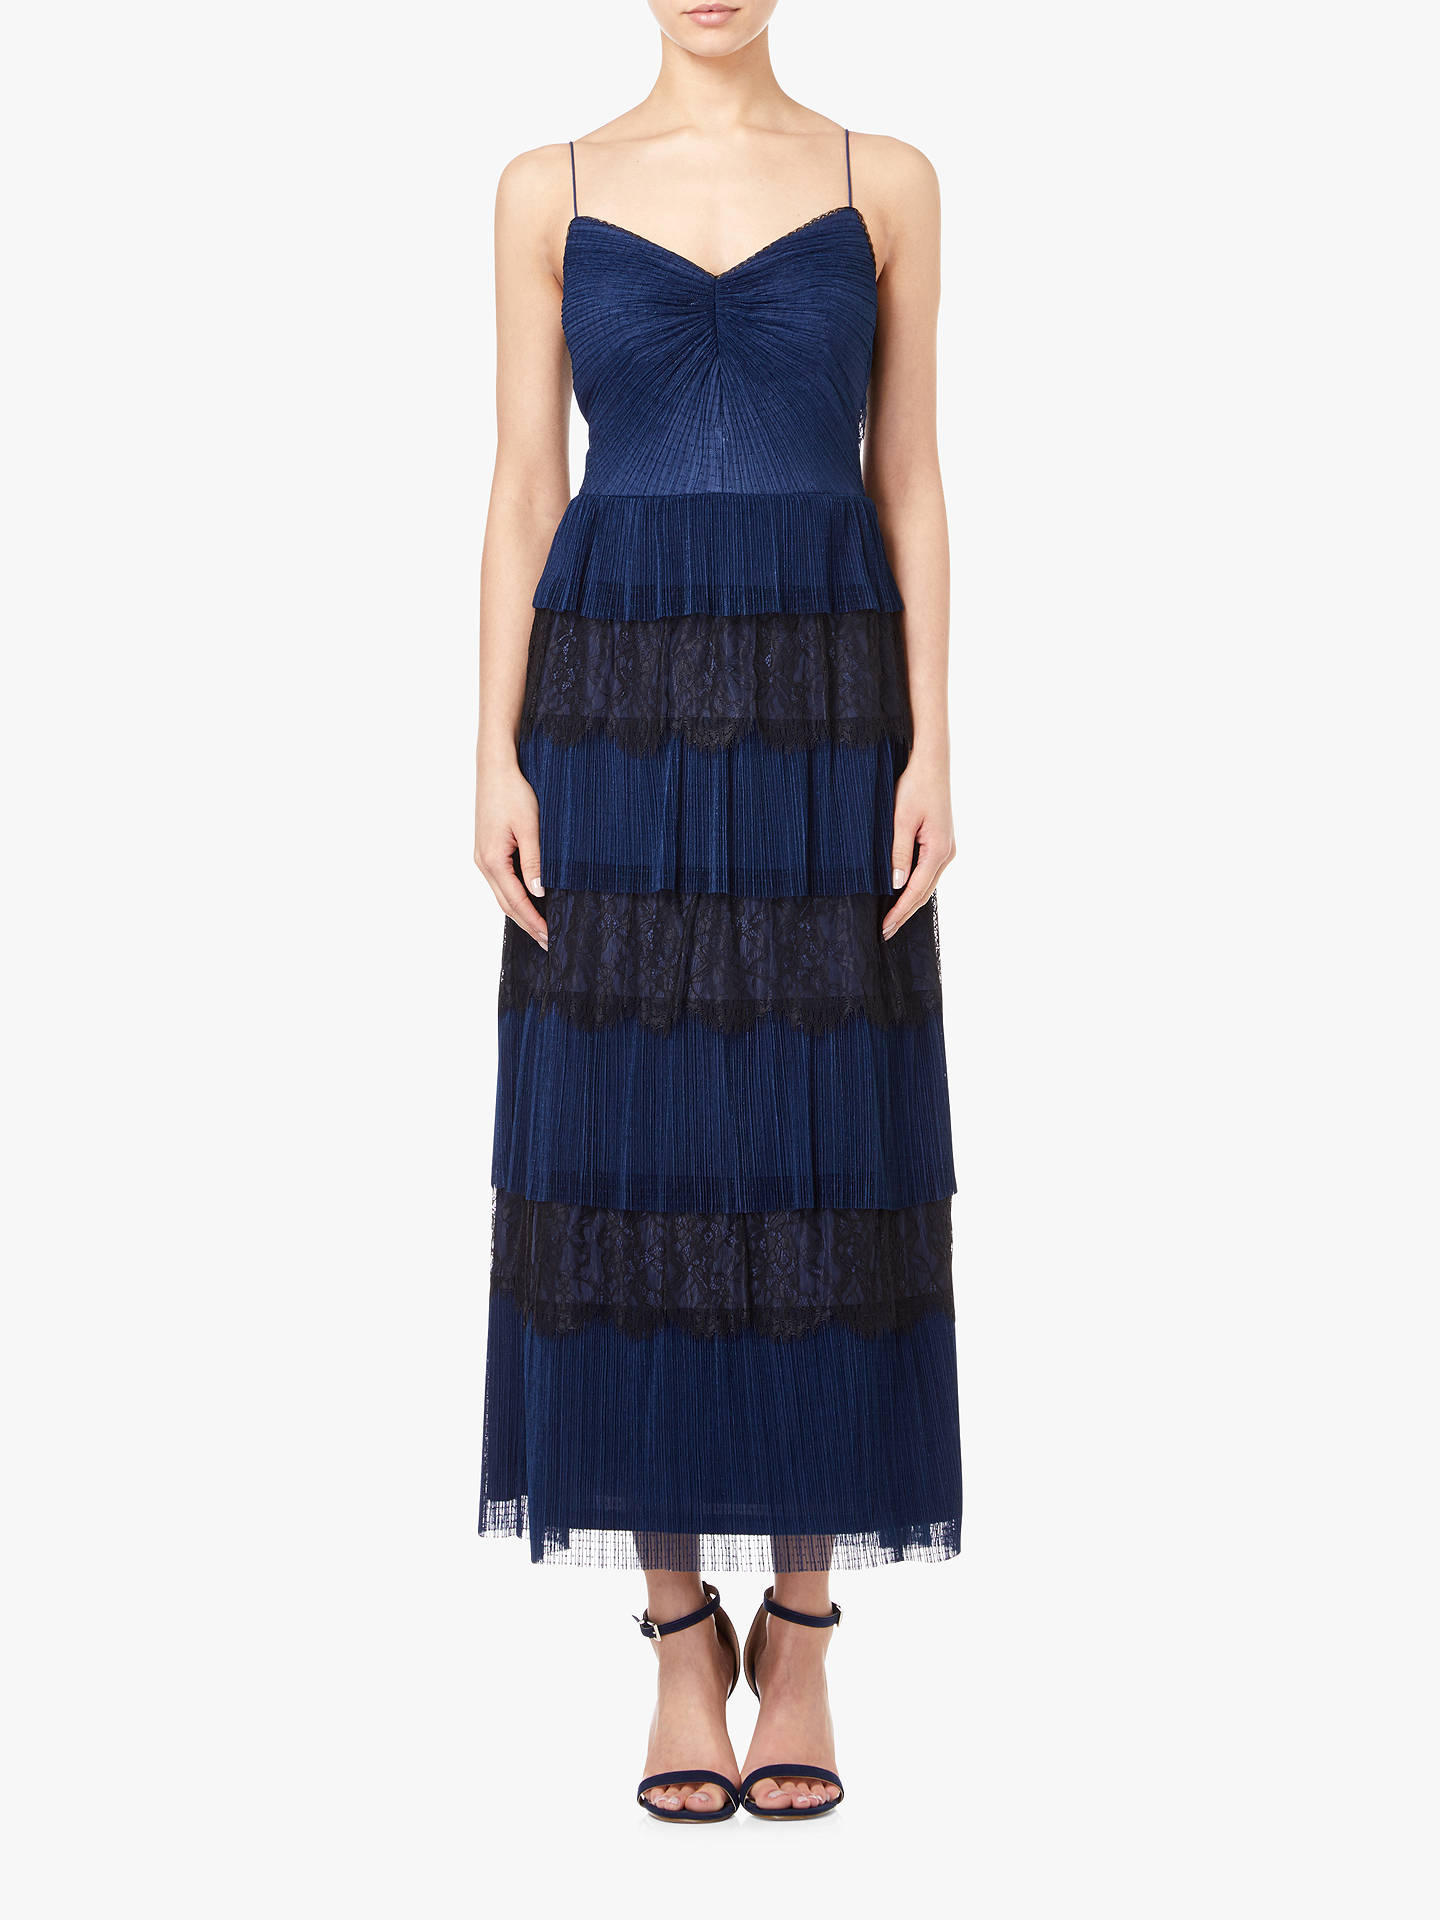 Adrianna Papell Crinkle Lace Tiered Dress Midnight Blue At